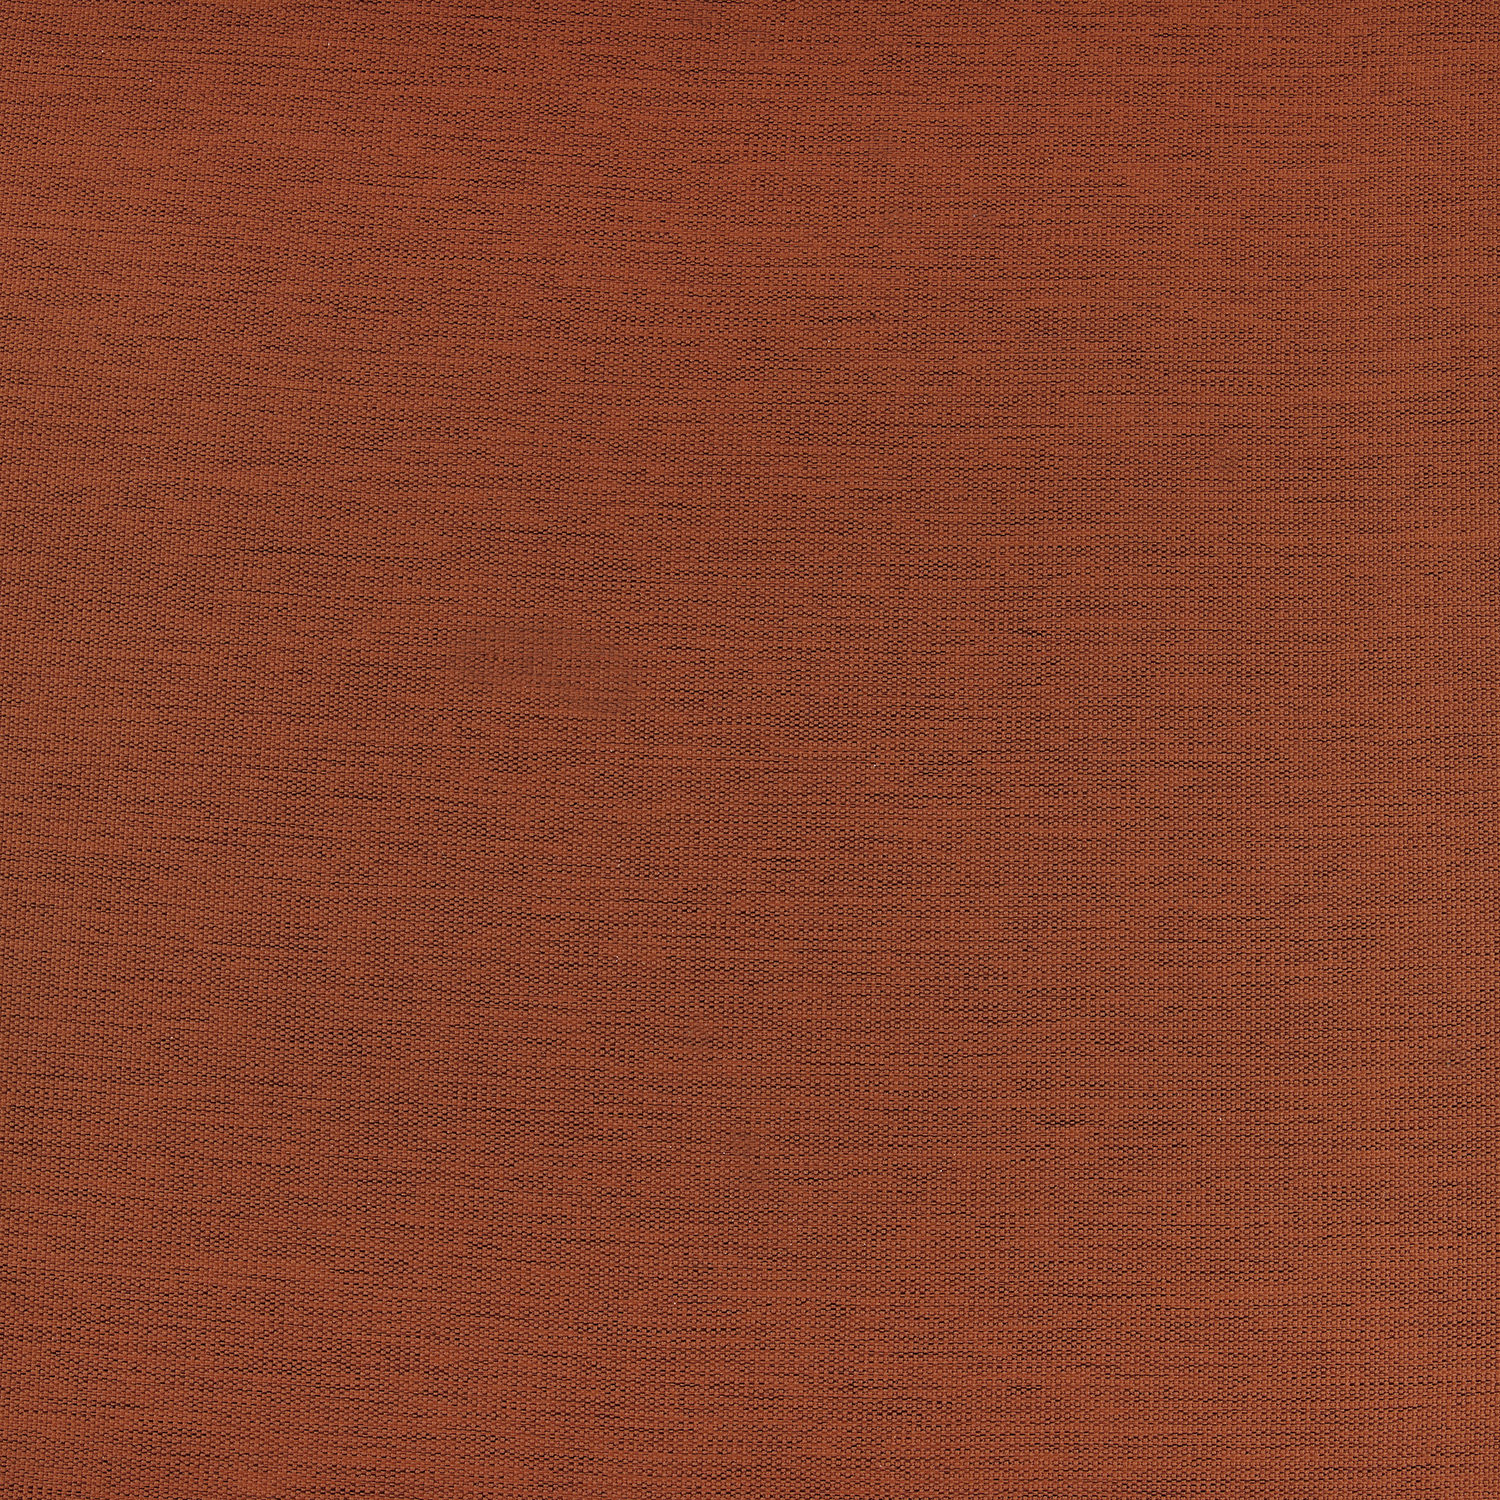 Persimmon Bellino Blackout Swatch